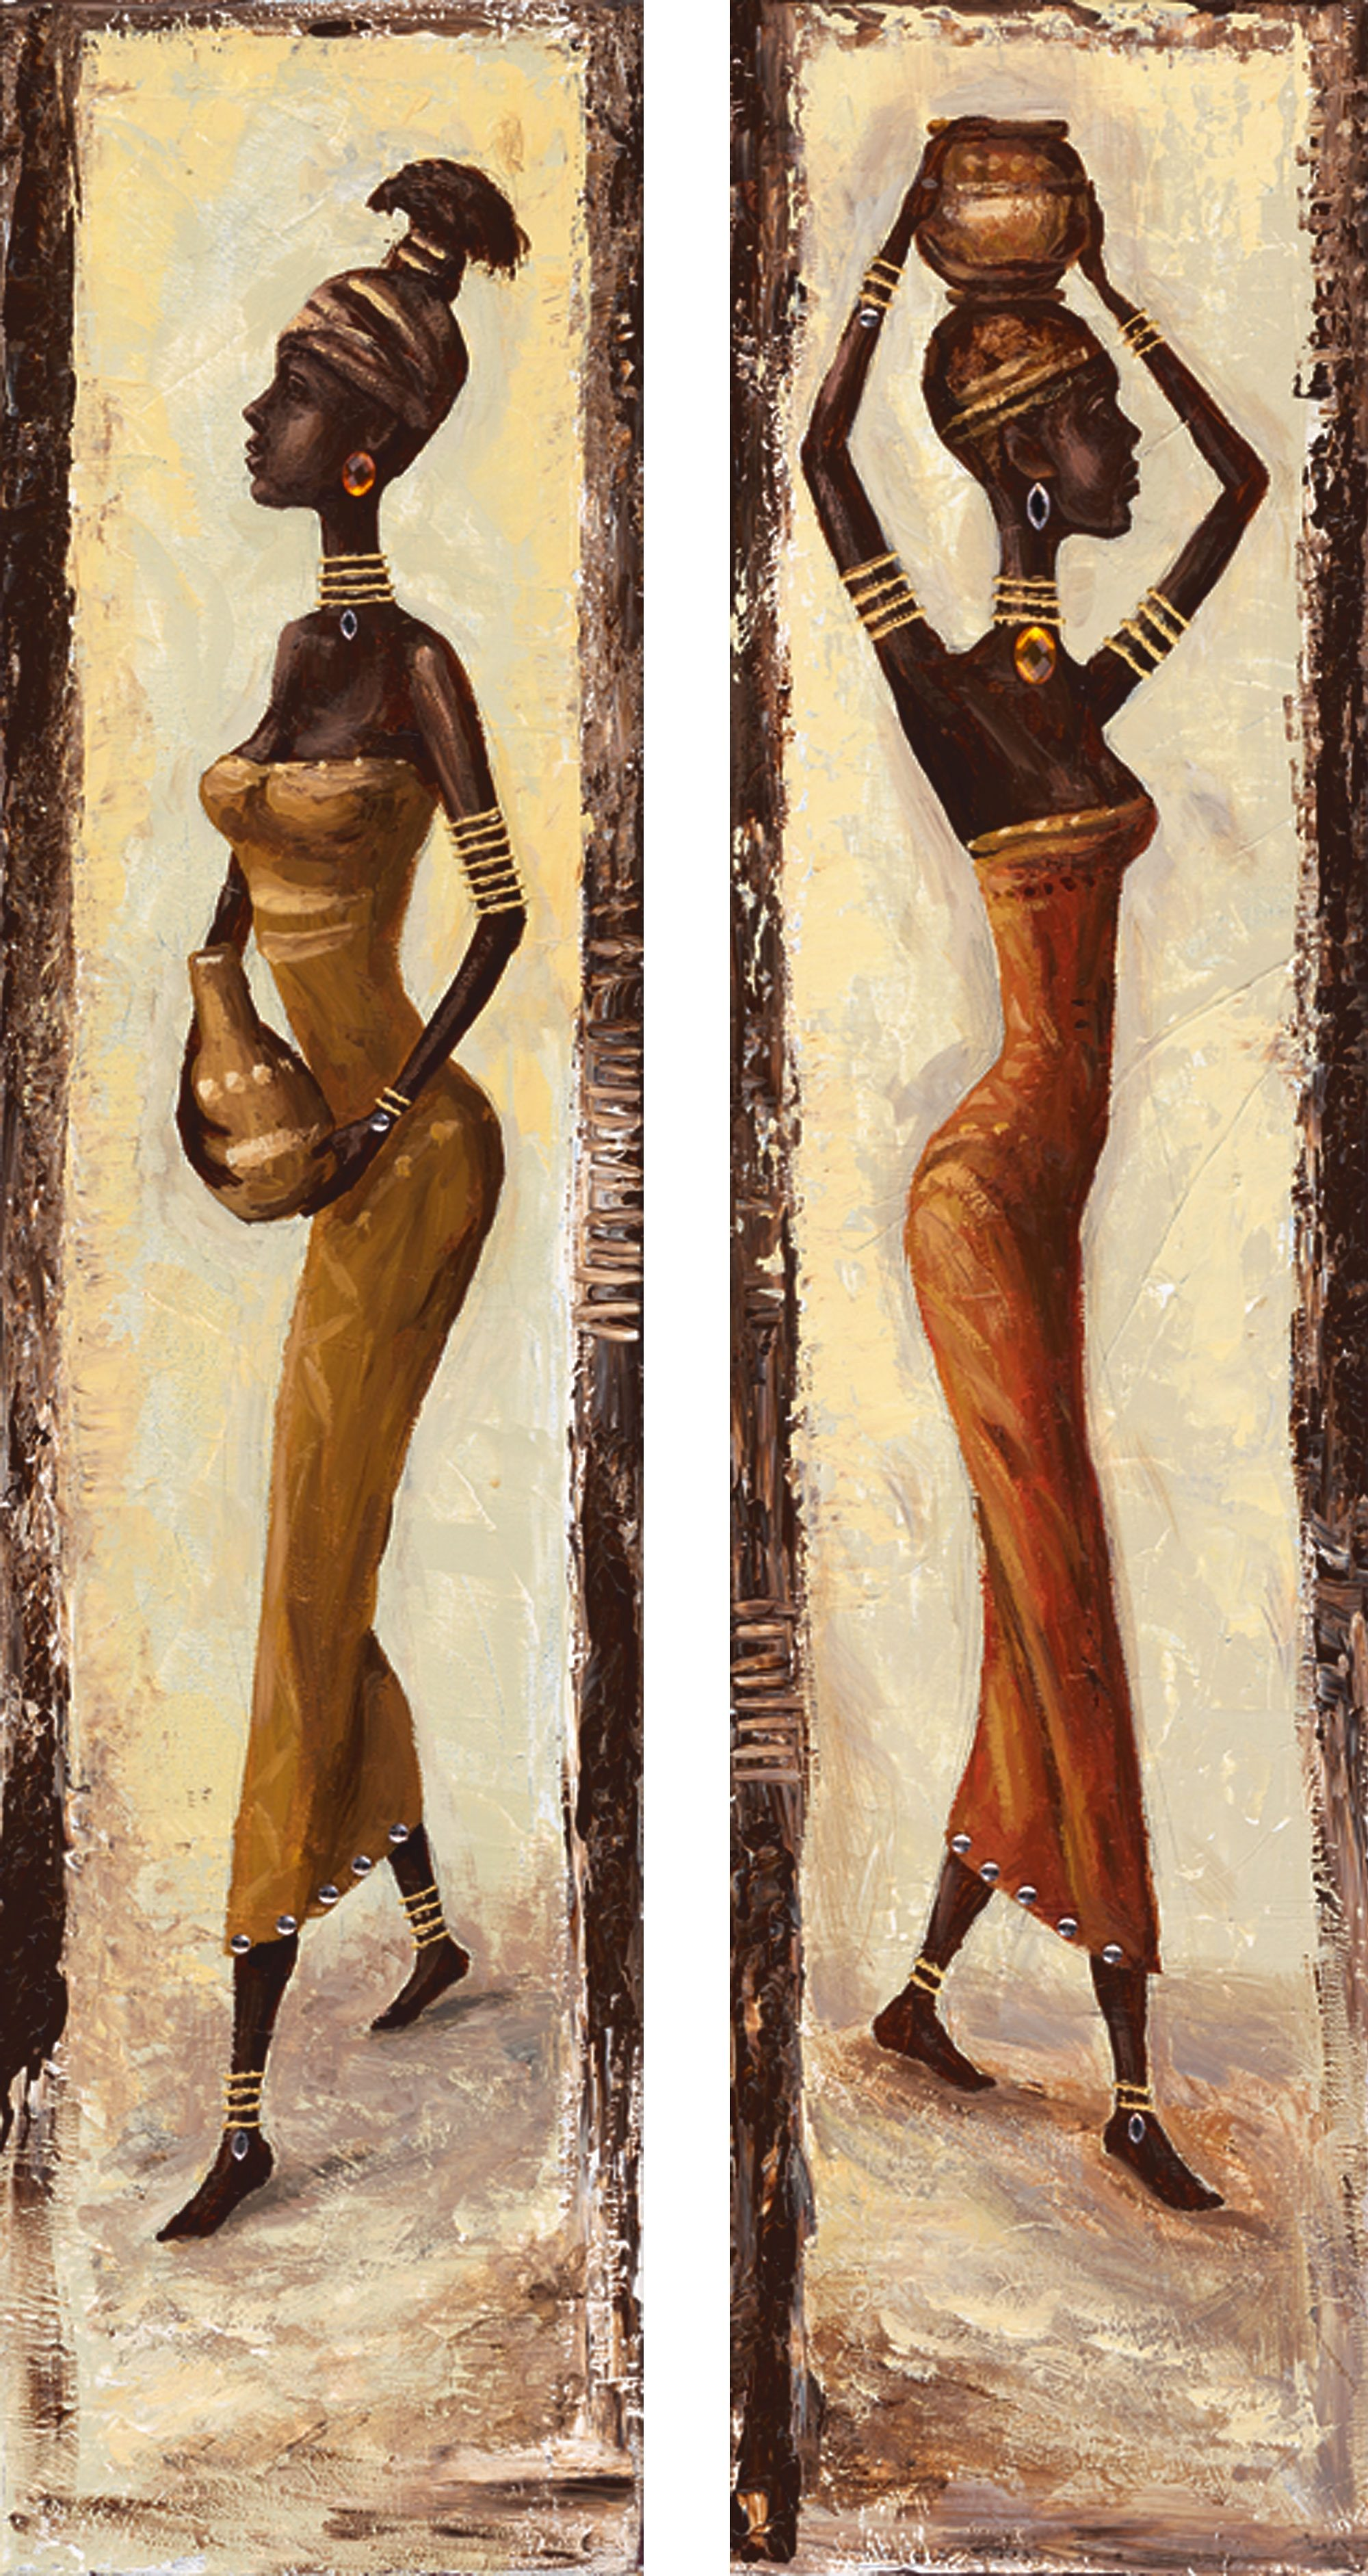 Home affaire, Bild Kunstdruck, »A. S.: African woman I + II«, 2x 19/74 cm